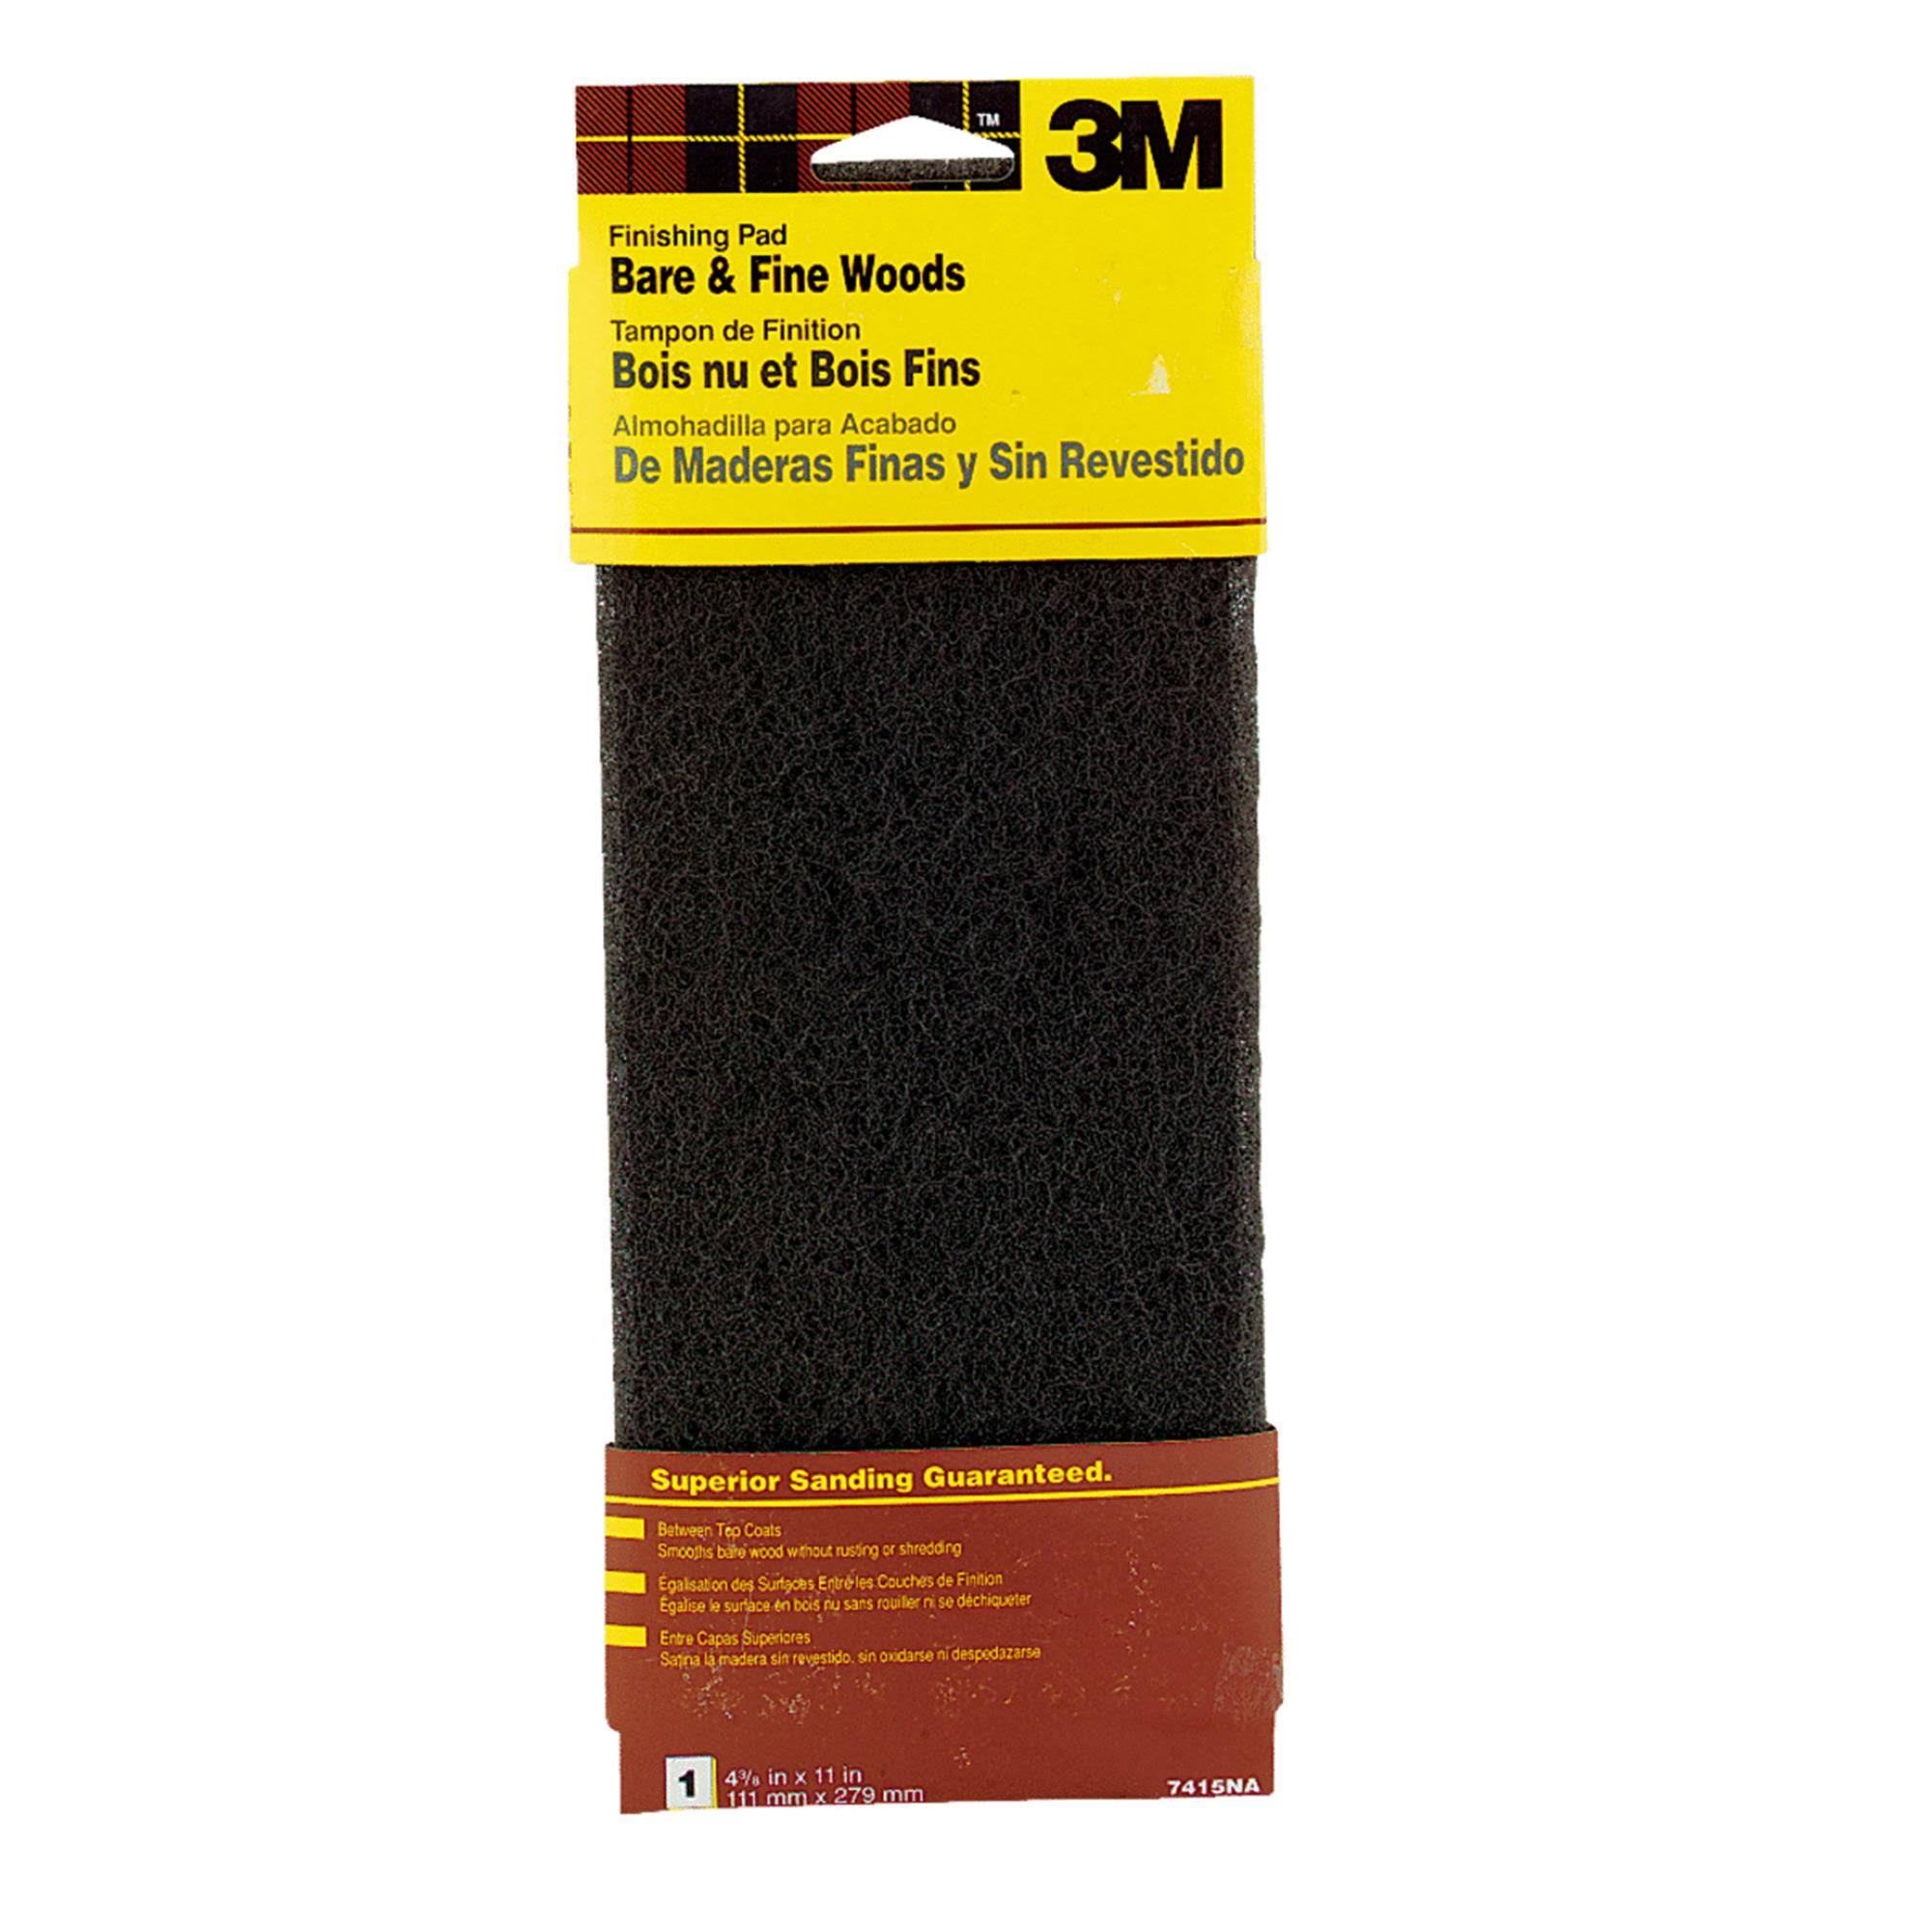 3M Wood Finishing Pad